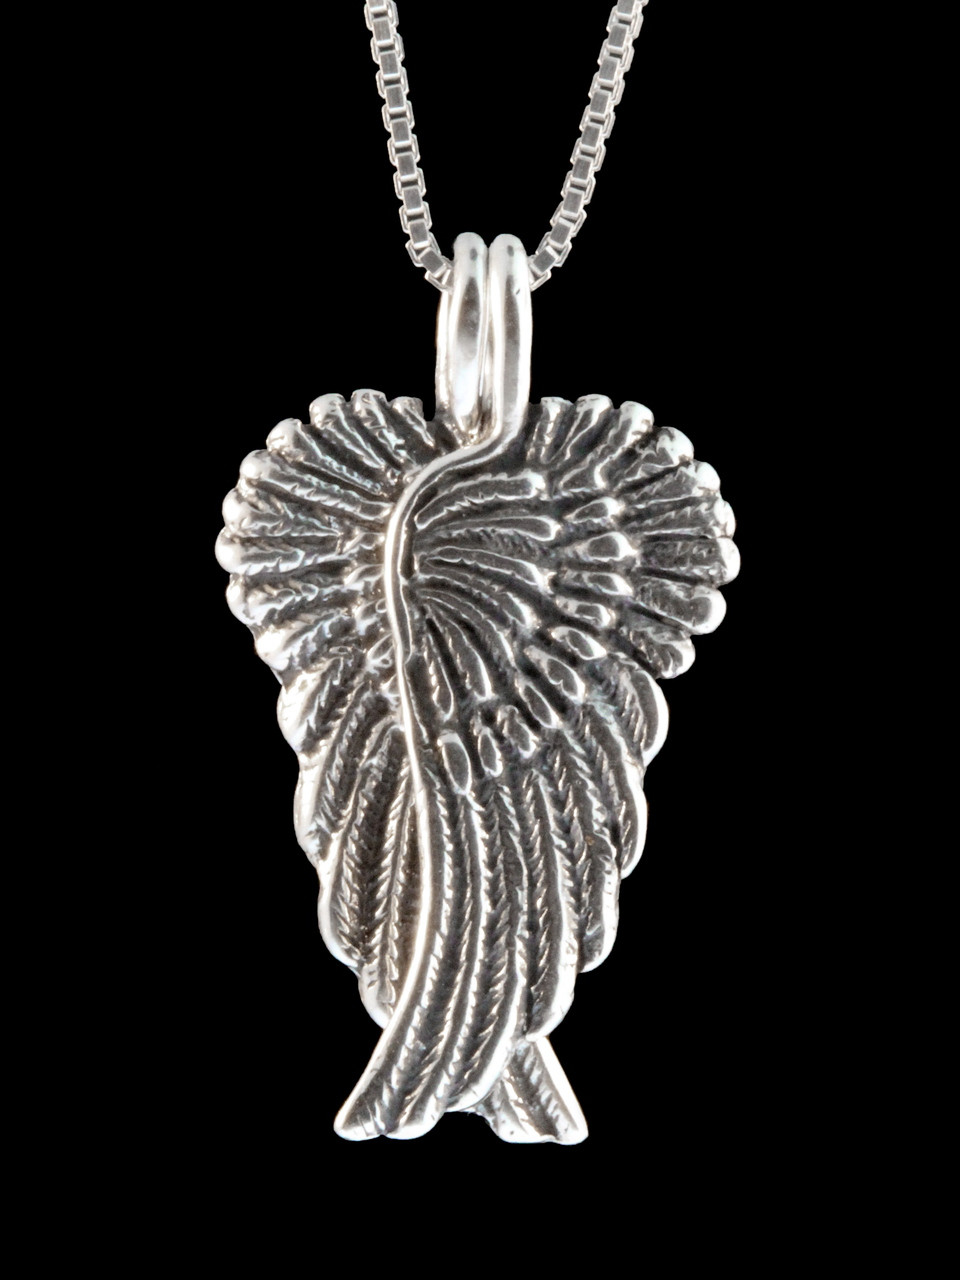 print blackening wings angel jewelry pendant cgtrader pendants stl model models